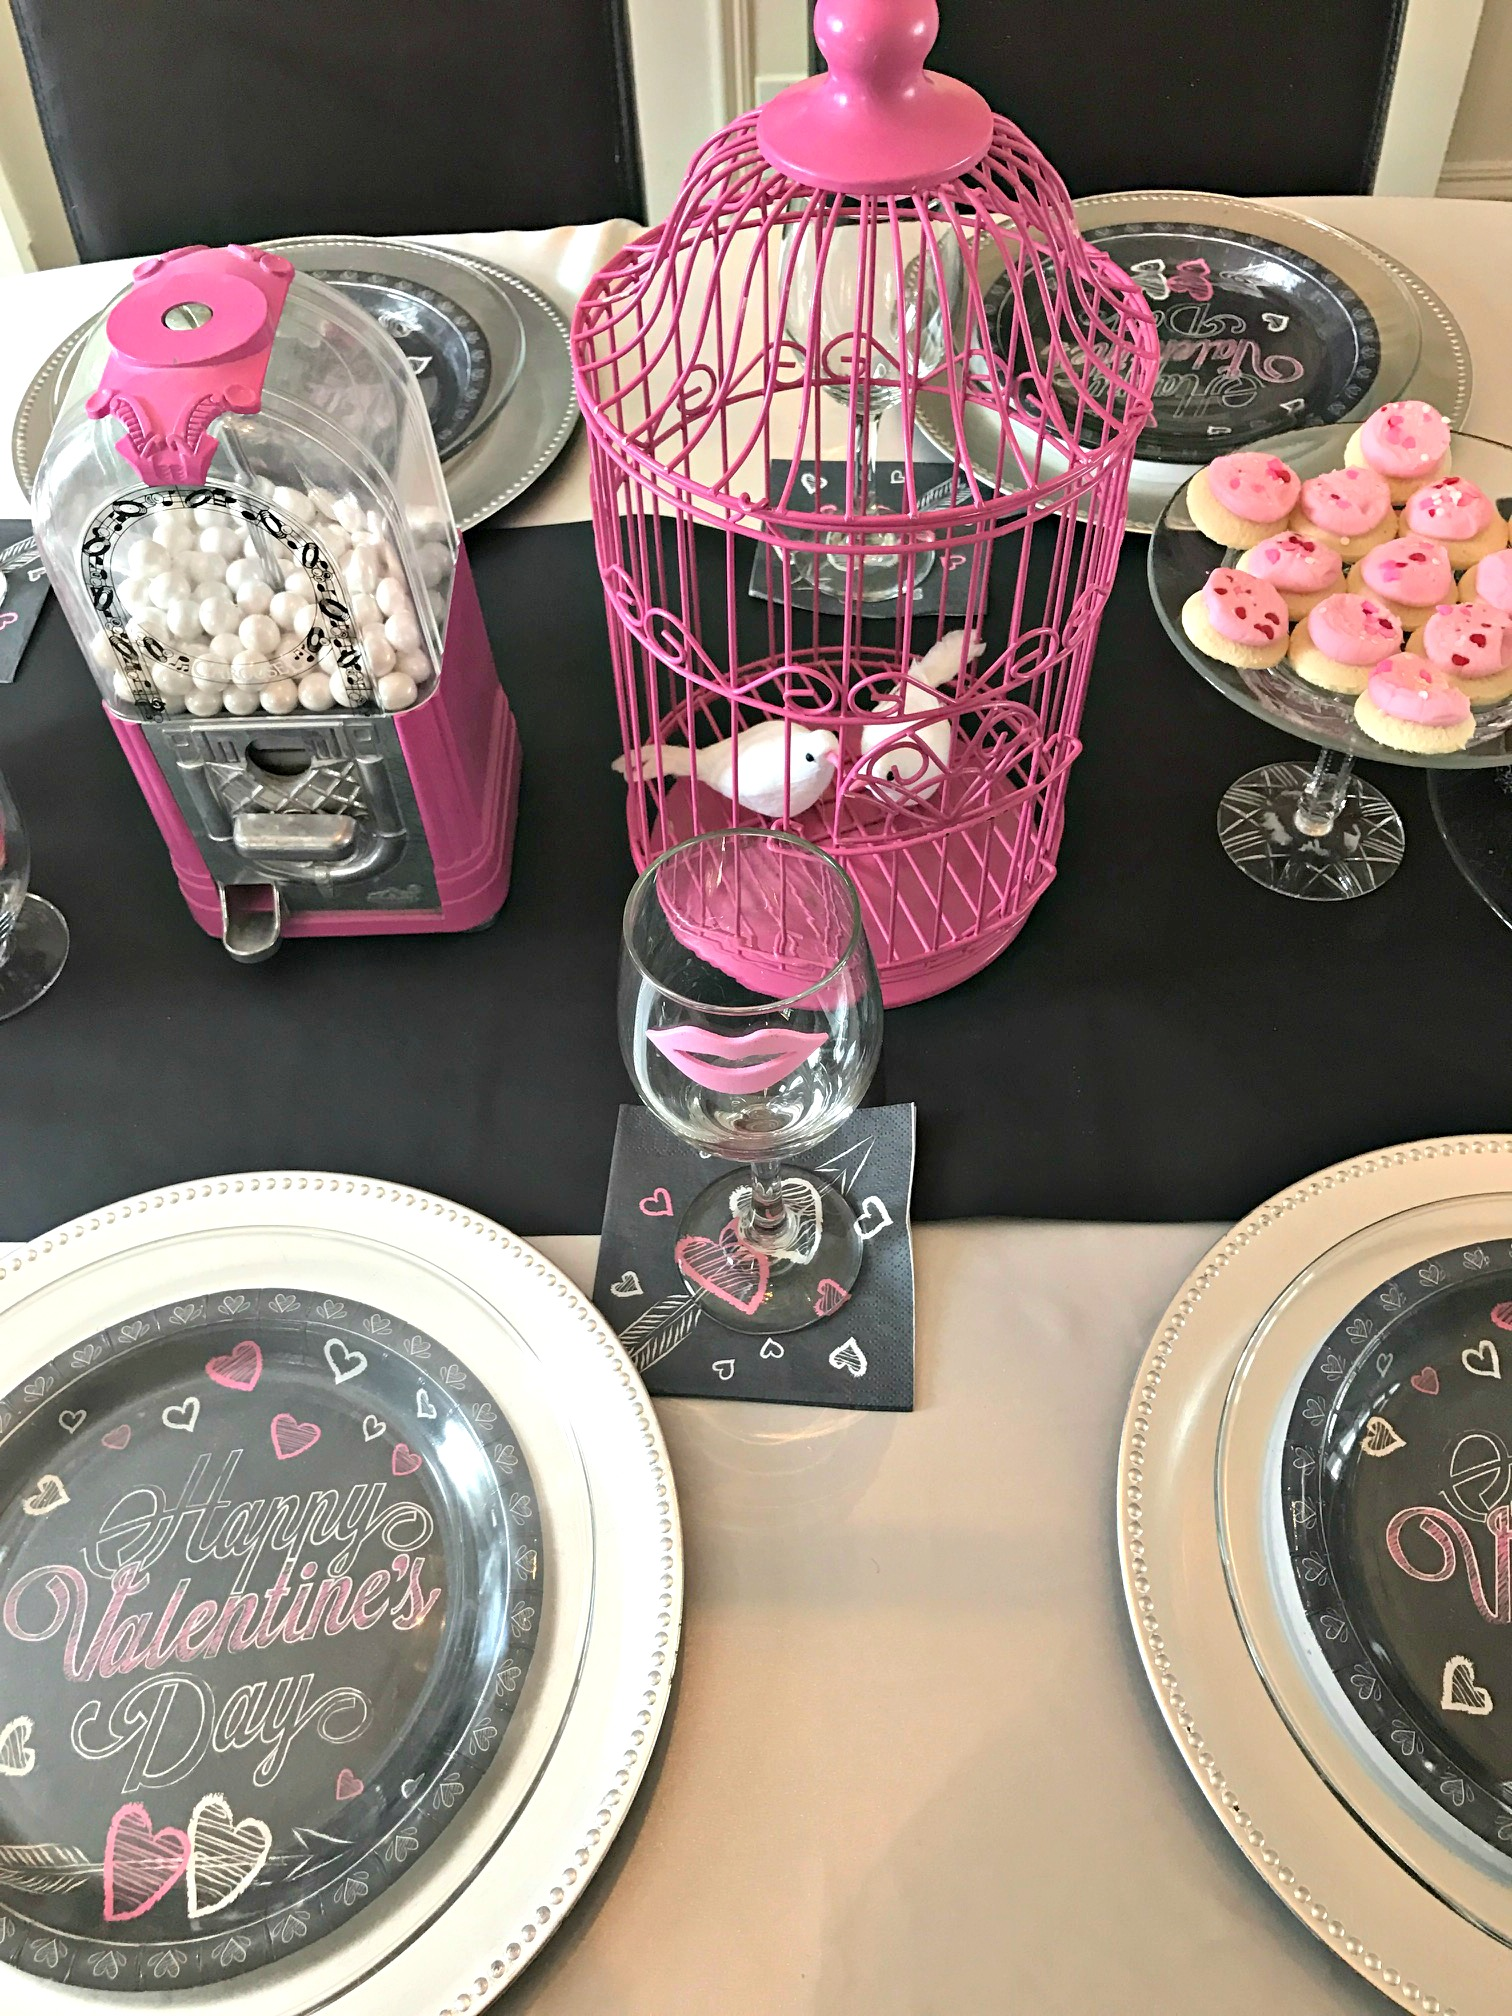 Valentineu0027s Day Table setting using pink and black with chalkboard accents and a candy bar & Valentineu0027s Day Table Setting - a purdy little house